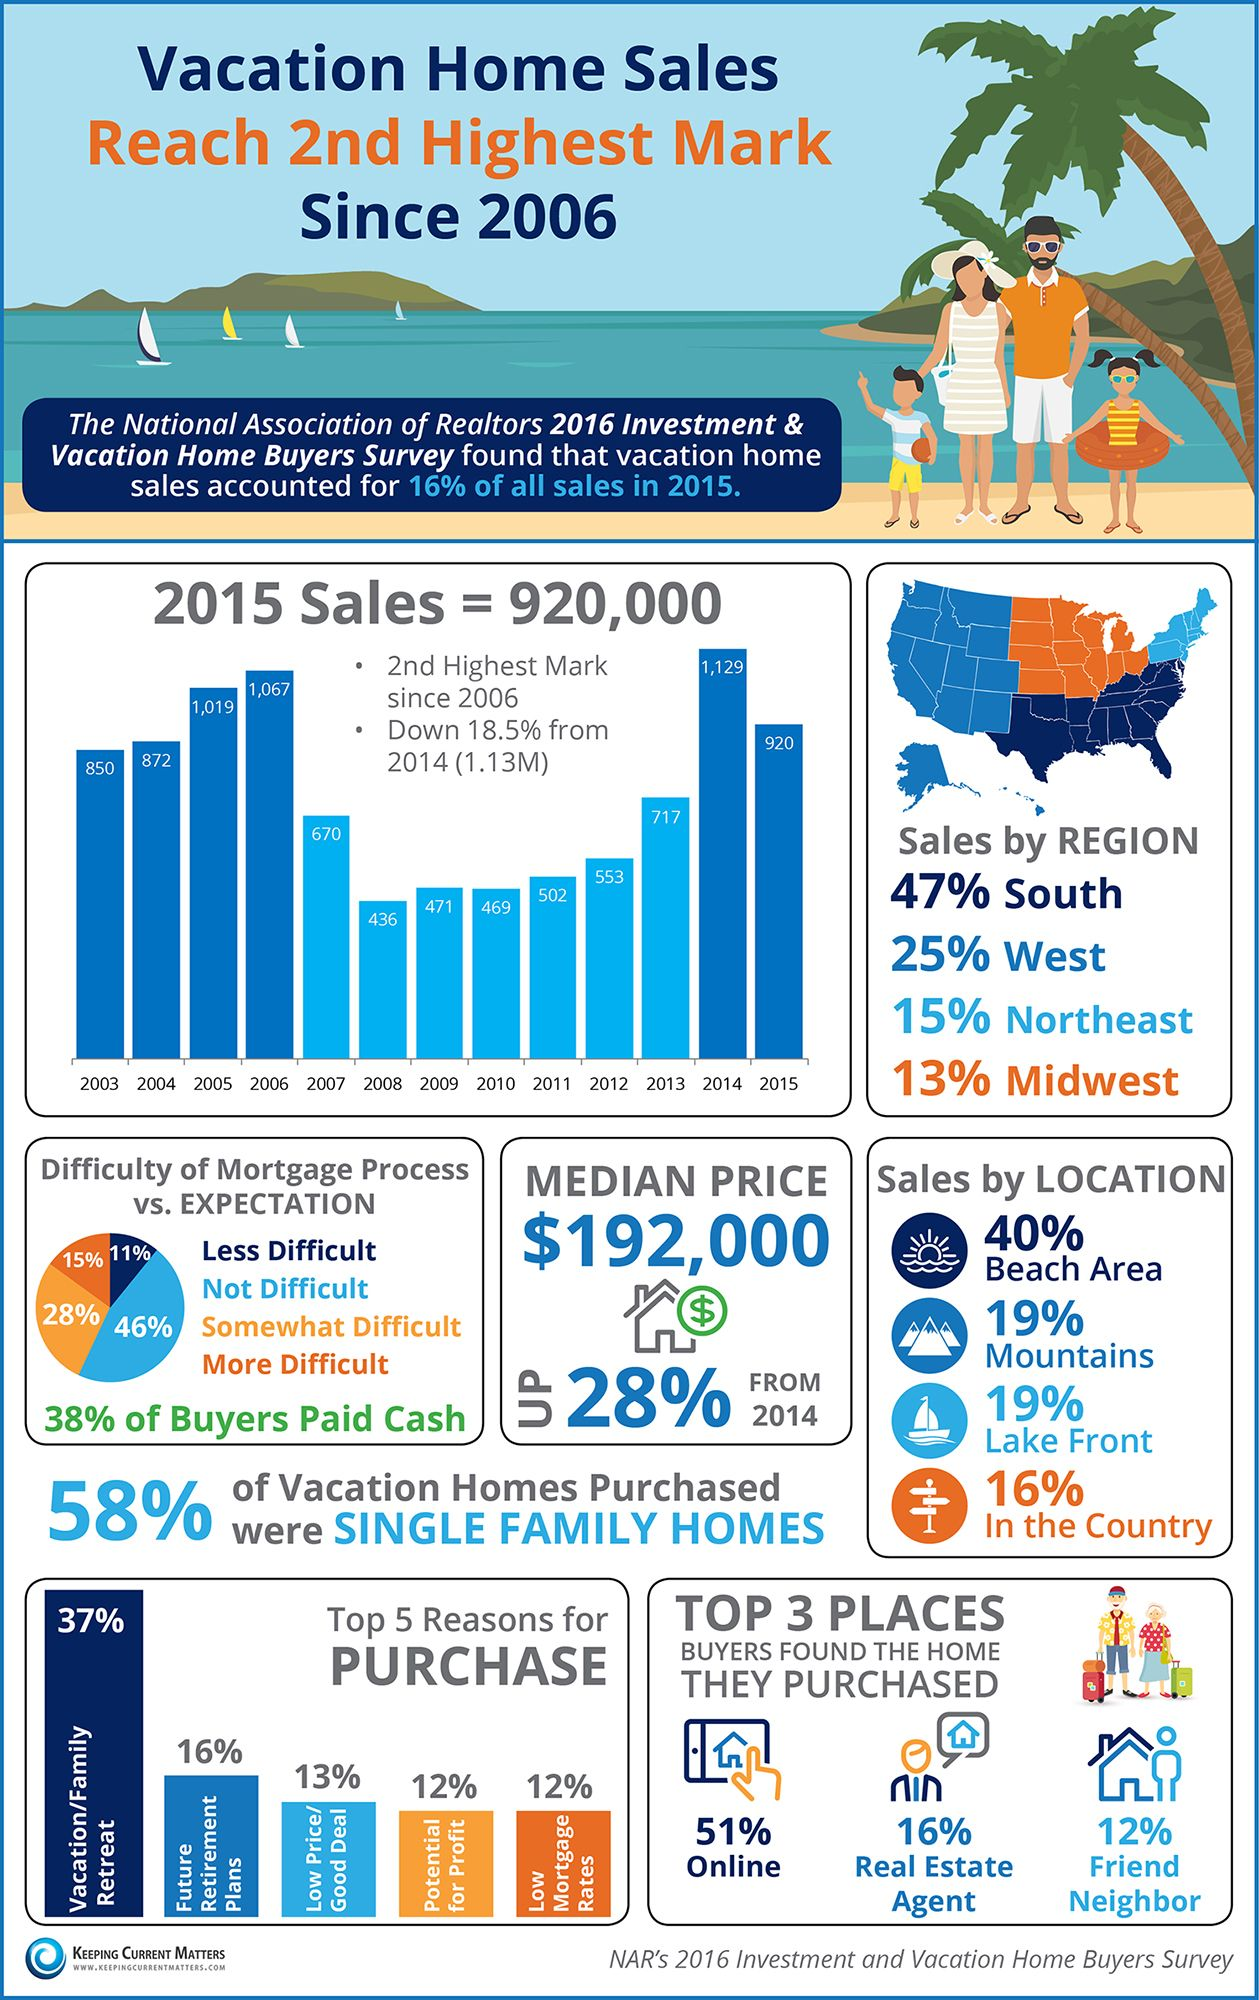 Vacation Home Sales Reach 2nd Highest Mark Since 2006 Infographic